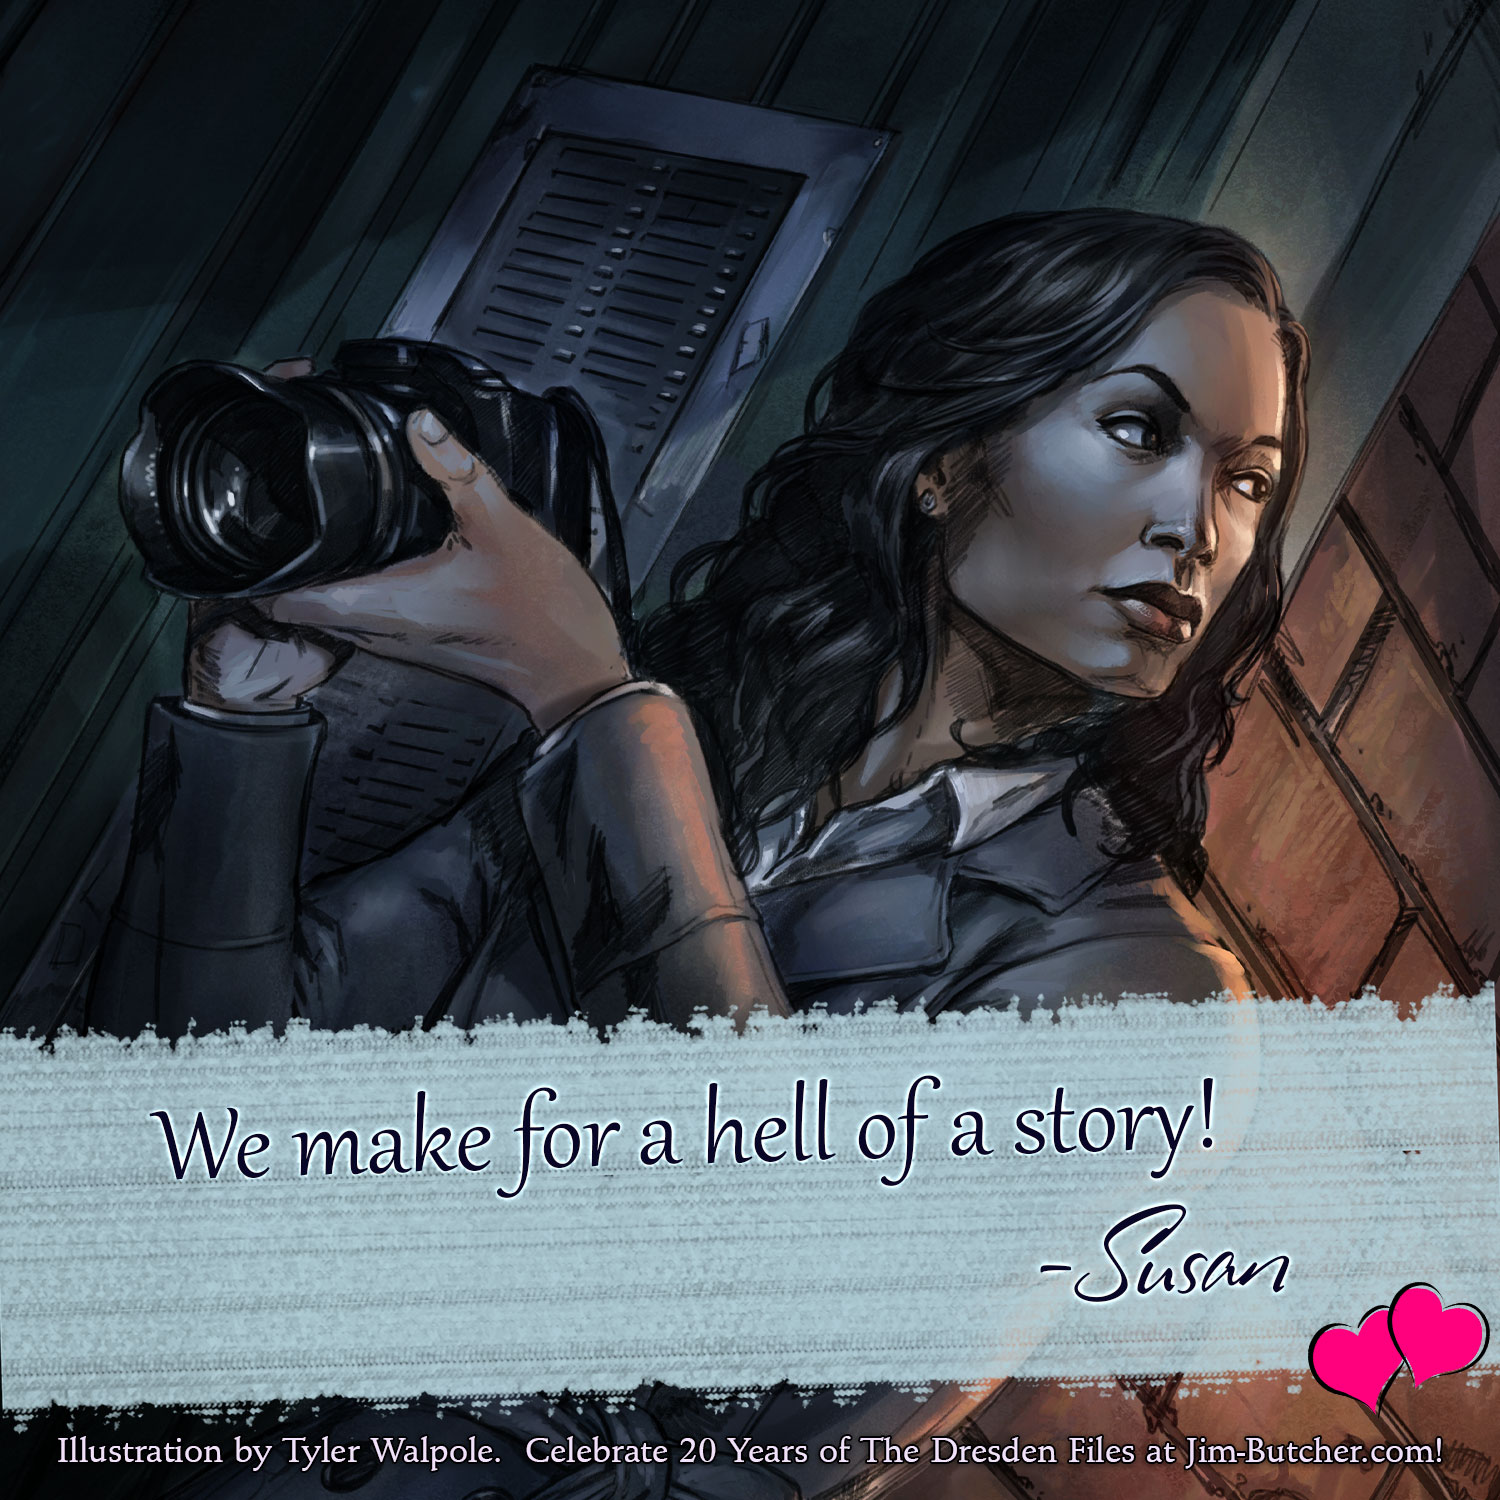 Susan: We make for a hell of a story!